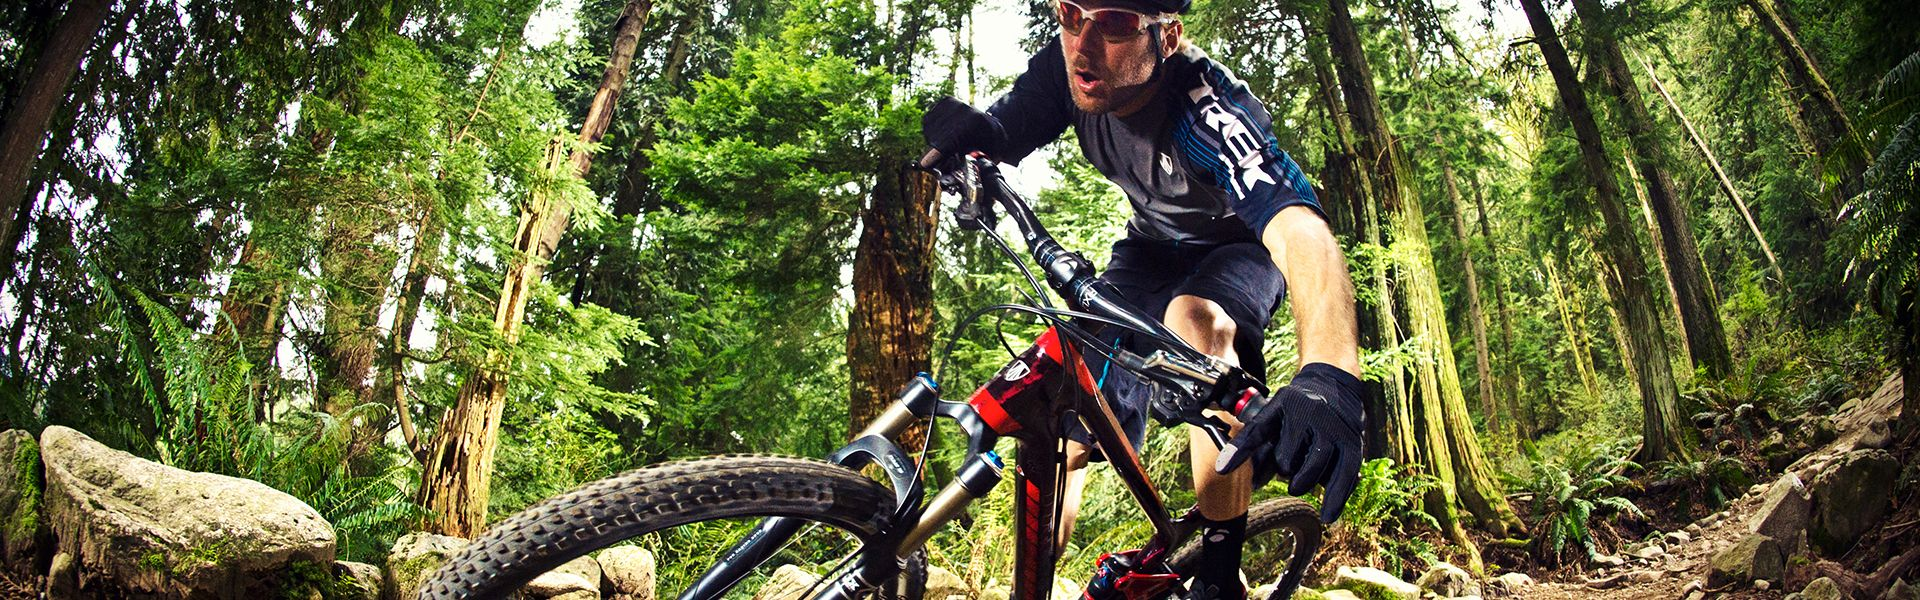 Mountain bike lawyer